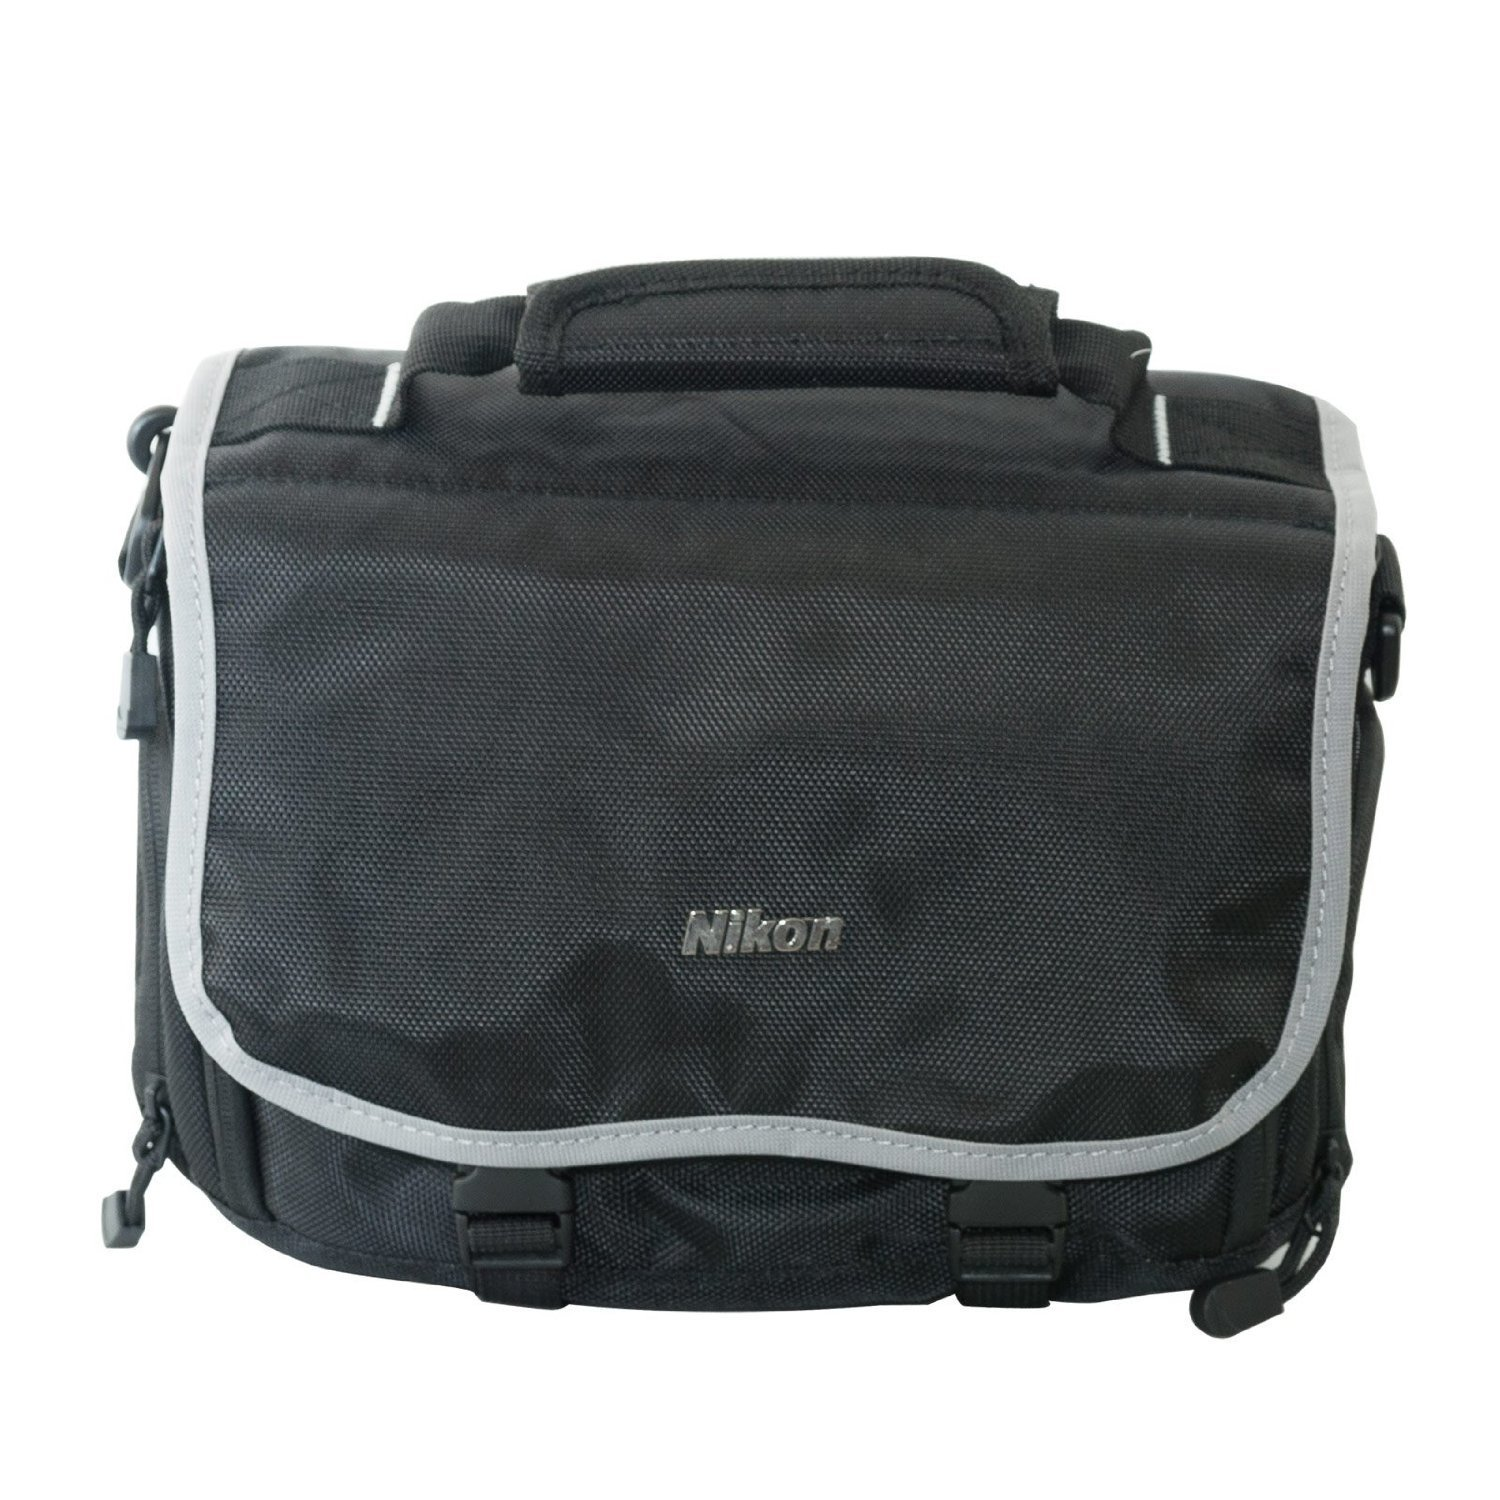 "Shooter Package For The Nikon D5100 Featuring Nikon Deluxe Gadget Bag, Opteka 70"" Pro Tripod and More by Opteka"